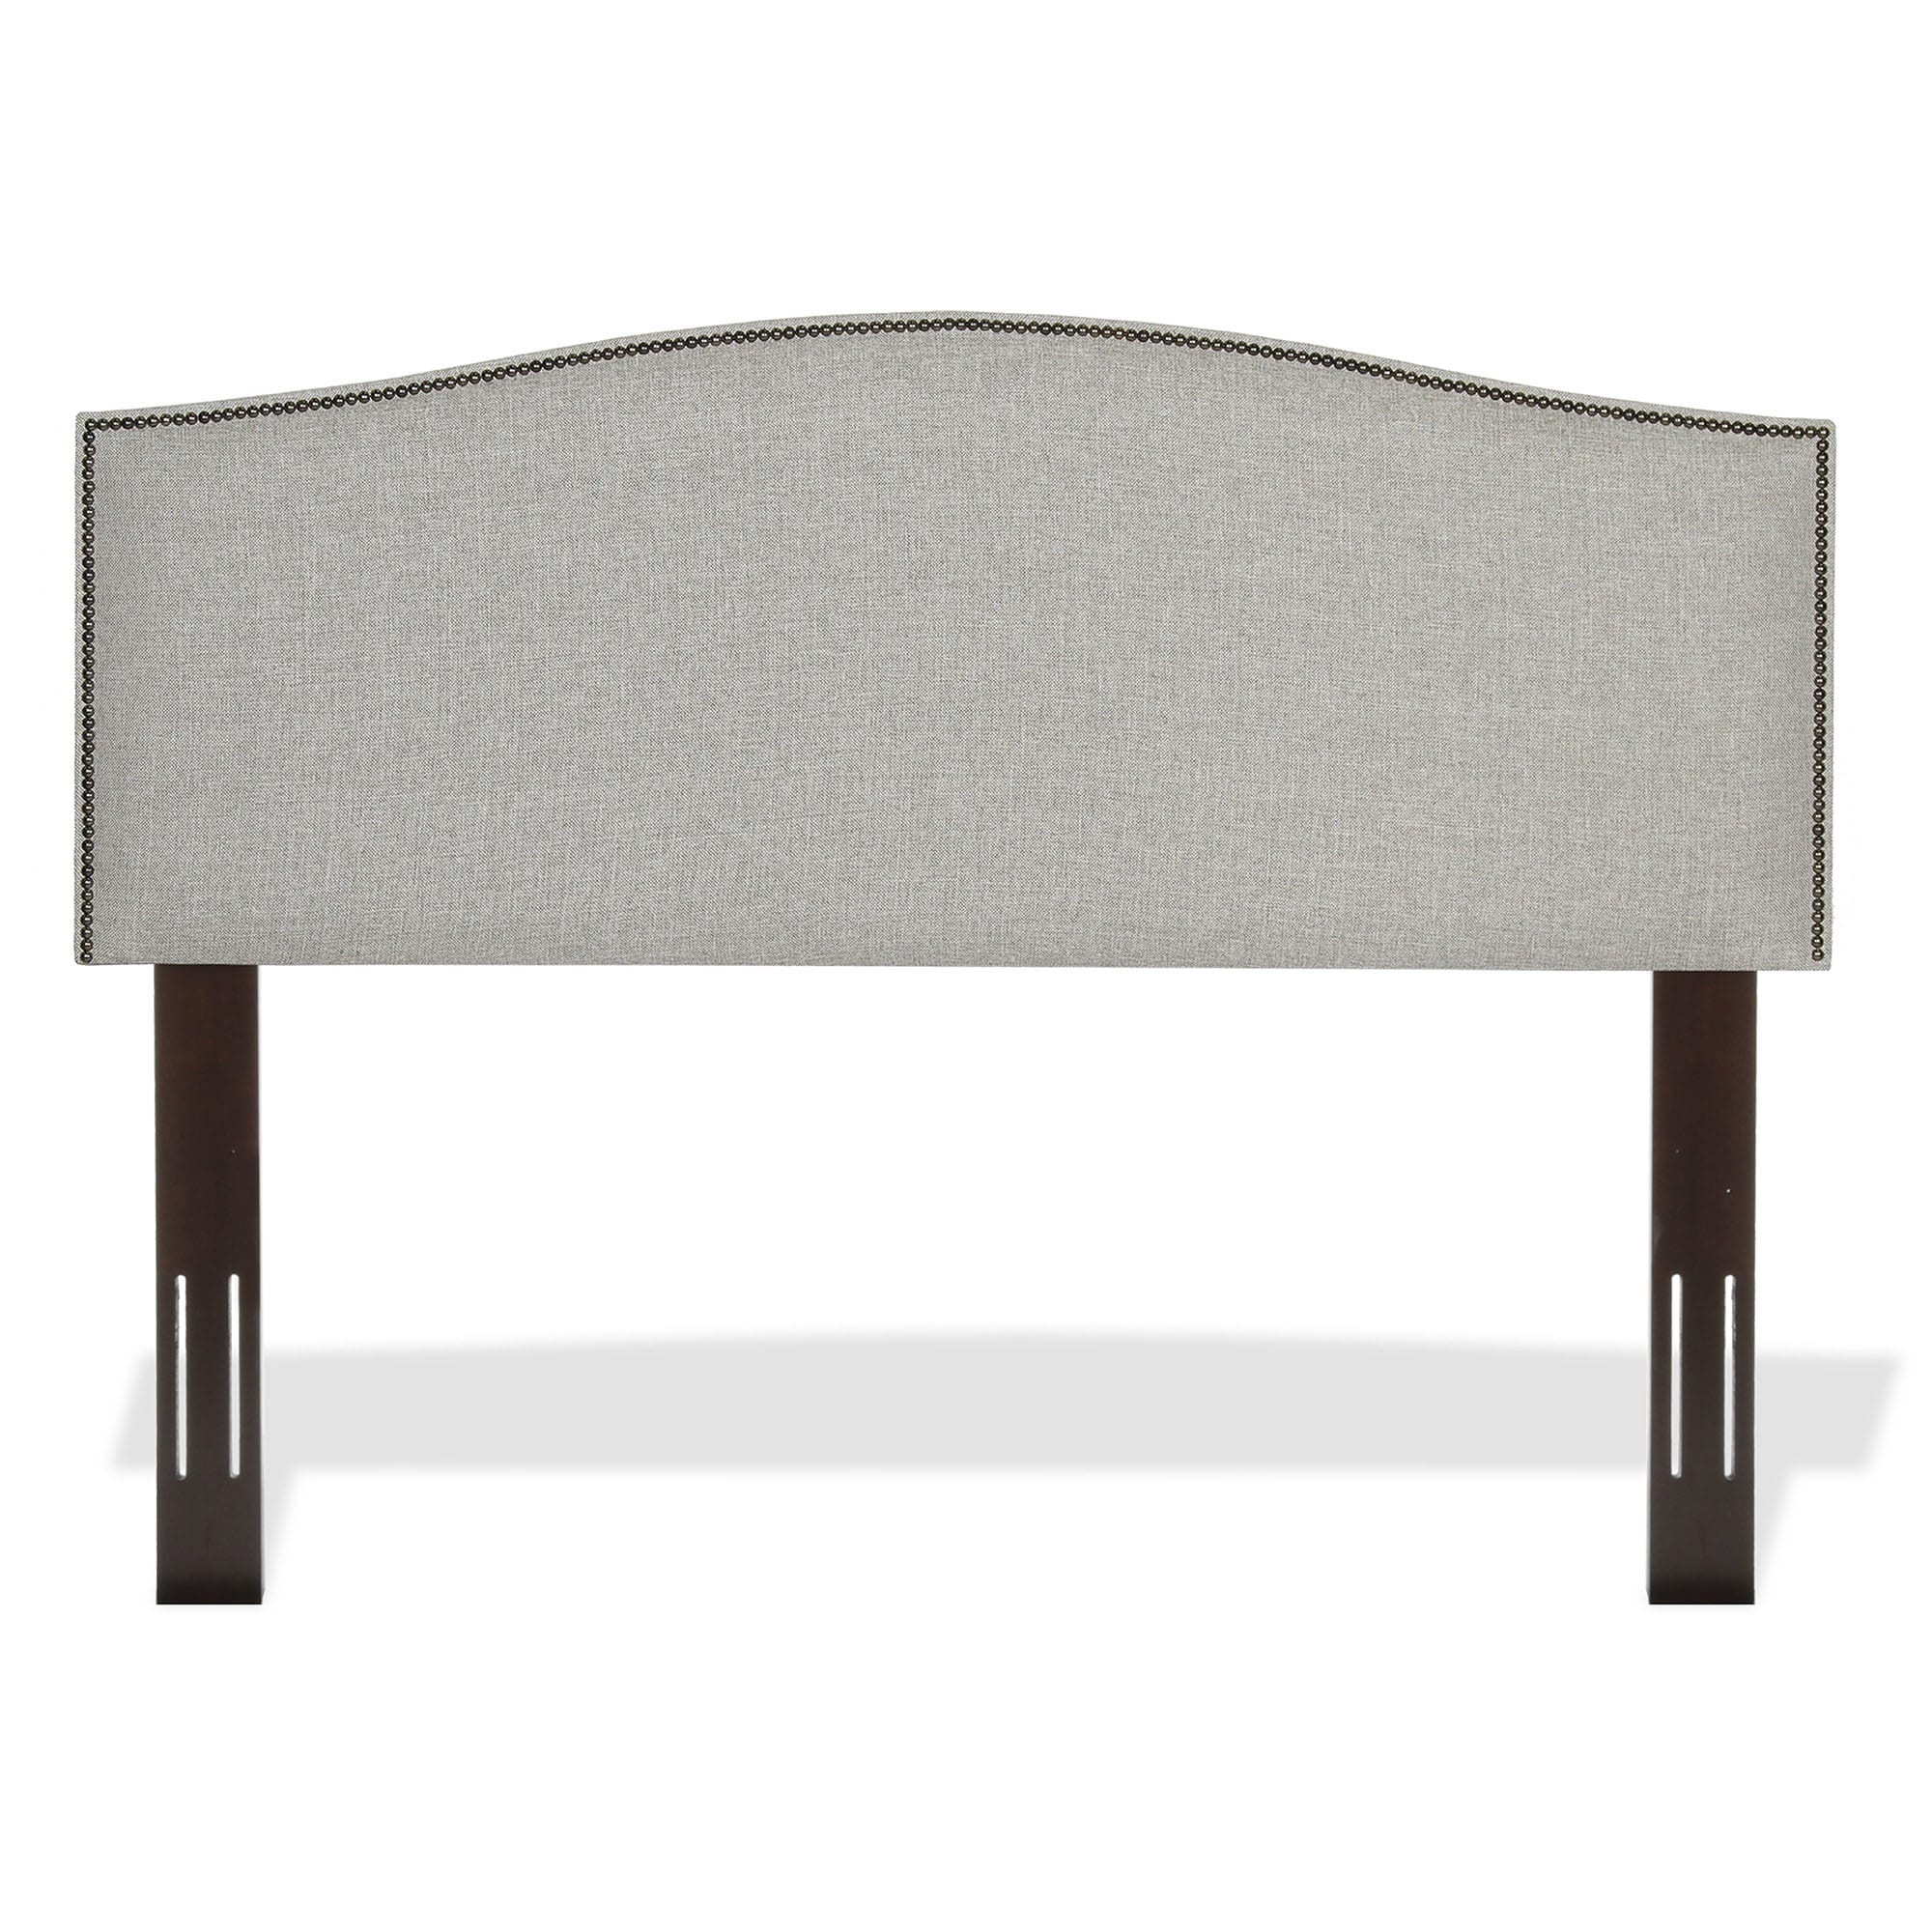 leggett platt carlisle upholstered headboard panel w solid wood adjustable frame  [ 2000 x 2000 Pixel ]